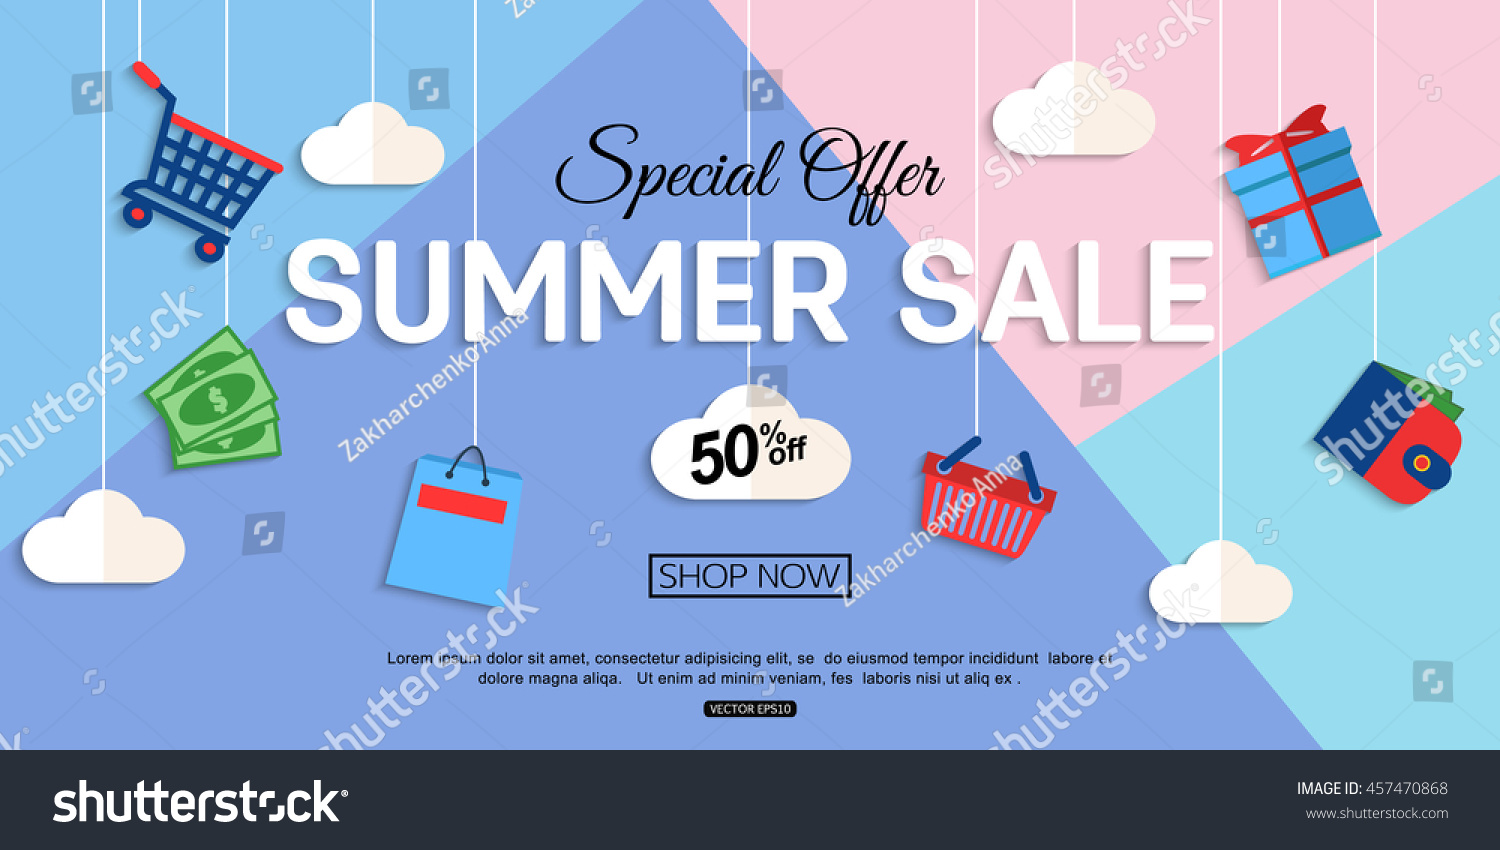 Sale discount background online store shop stock vector for Online retailer for sale